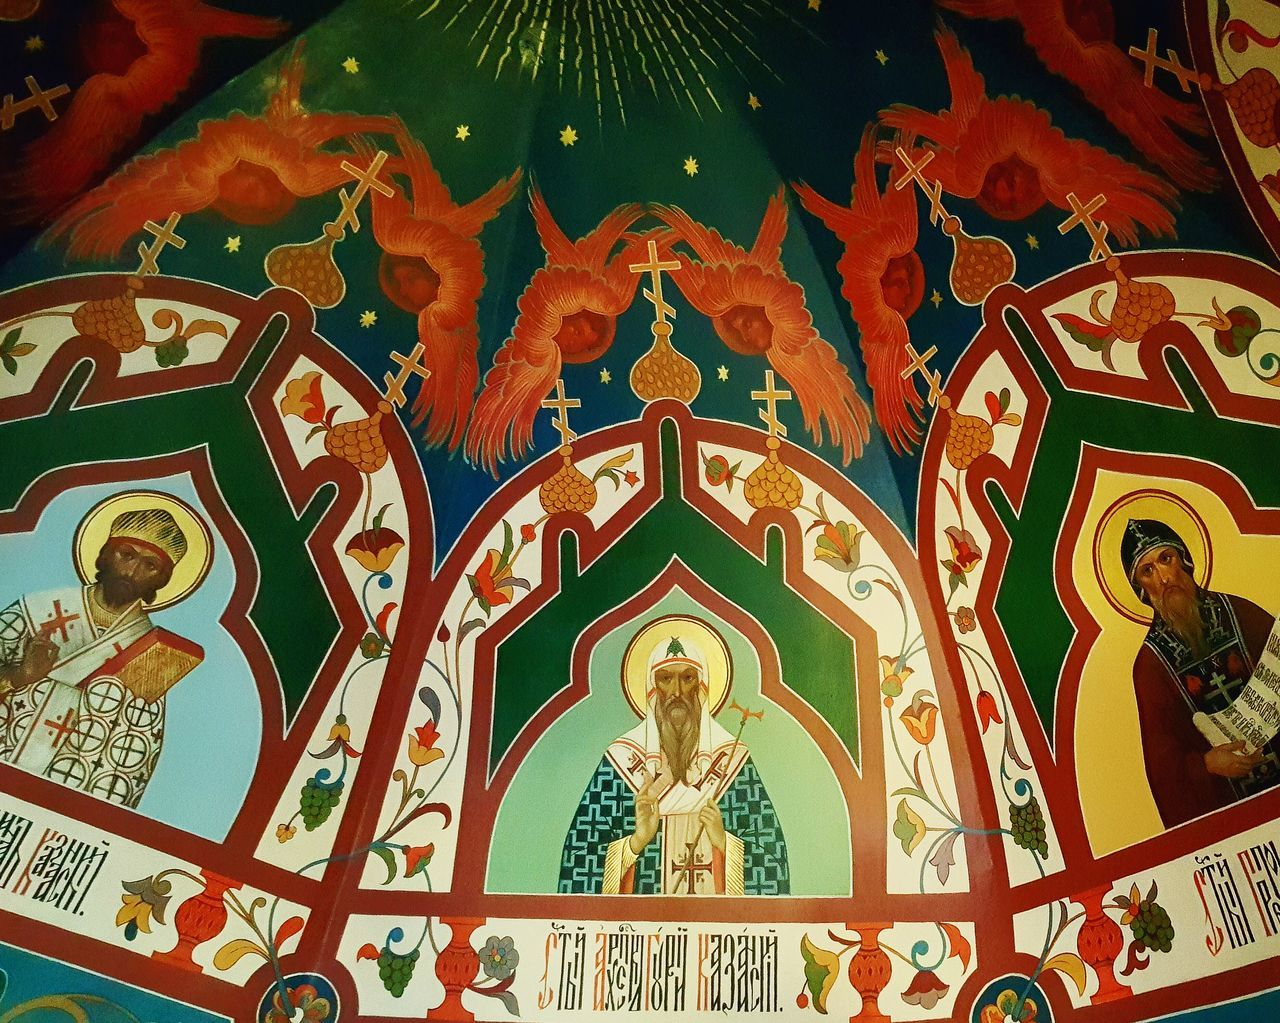 No People Architecture Cathedral Red Square Moscow Religion Travel Destinations Celing Art Celing Detail Spirituality Orthodox St. Basil's Cathedral St. Basil's Cathedral In Moscow Multi Colored Orthodox Church Inside Photography Ceiling Ortodox Church Moscow Architecture Fresco Russia Church History Place Of Worship Close-up